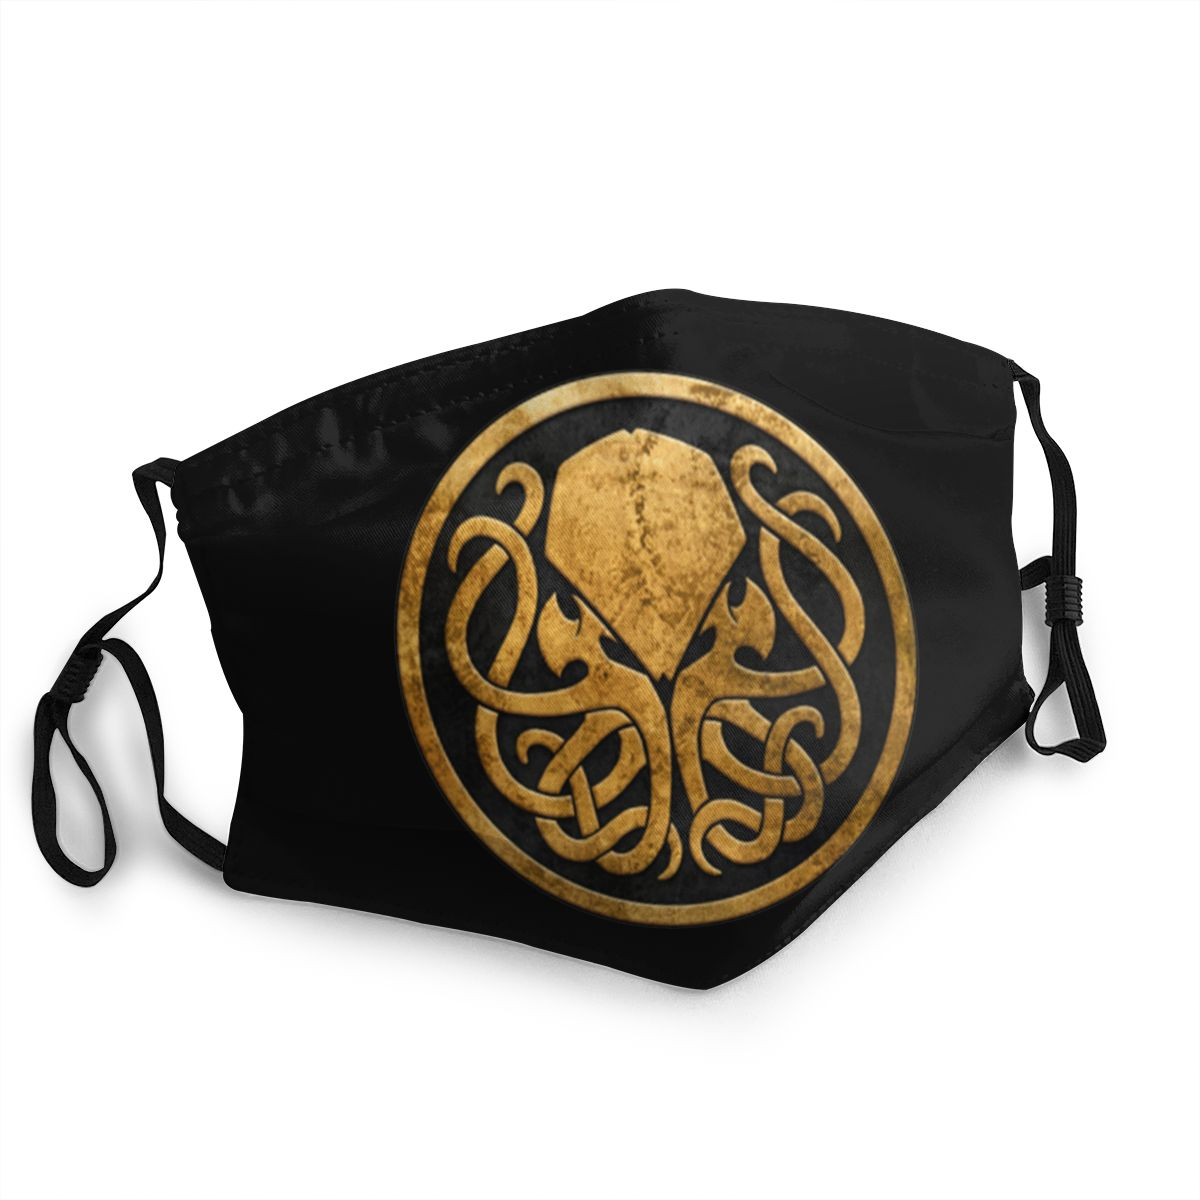 Call Of Cthulhu Lovecraft Reusable Face Mask Anti Bacterial Dust Protection Cover Respirator